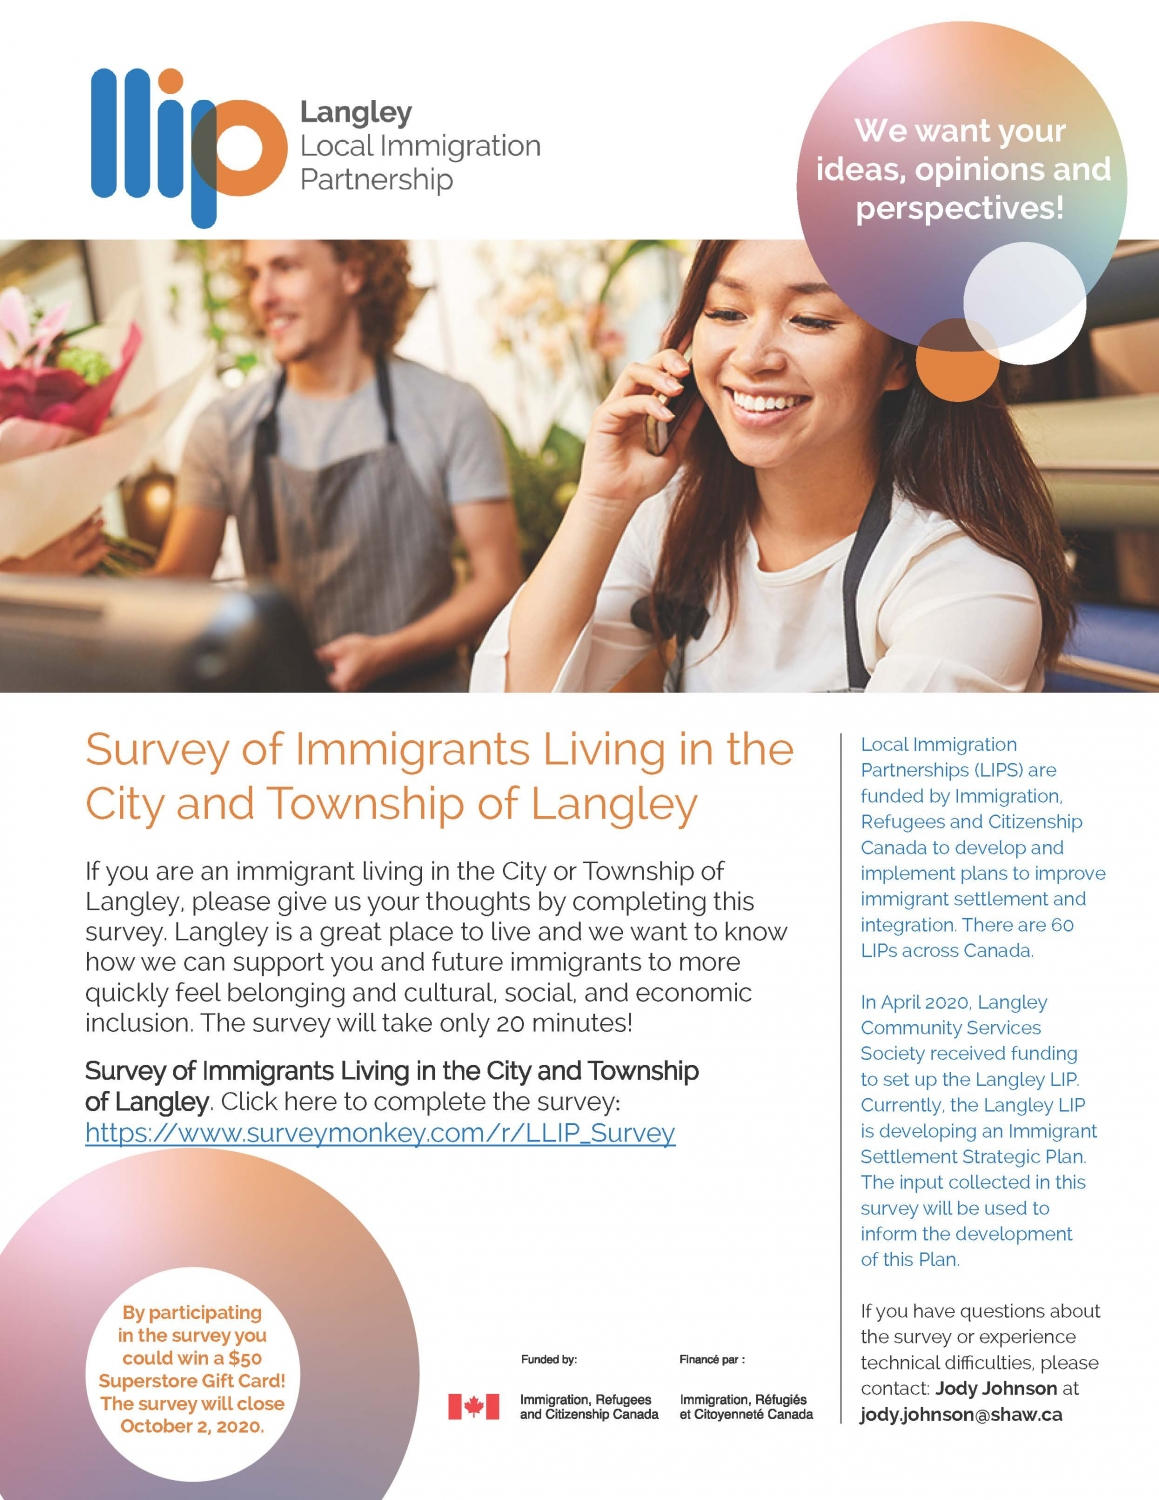 Langley Local Immigration Partnership Survey